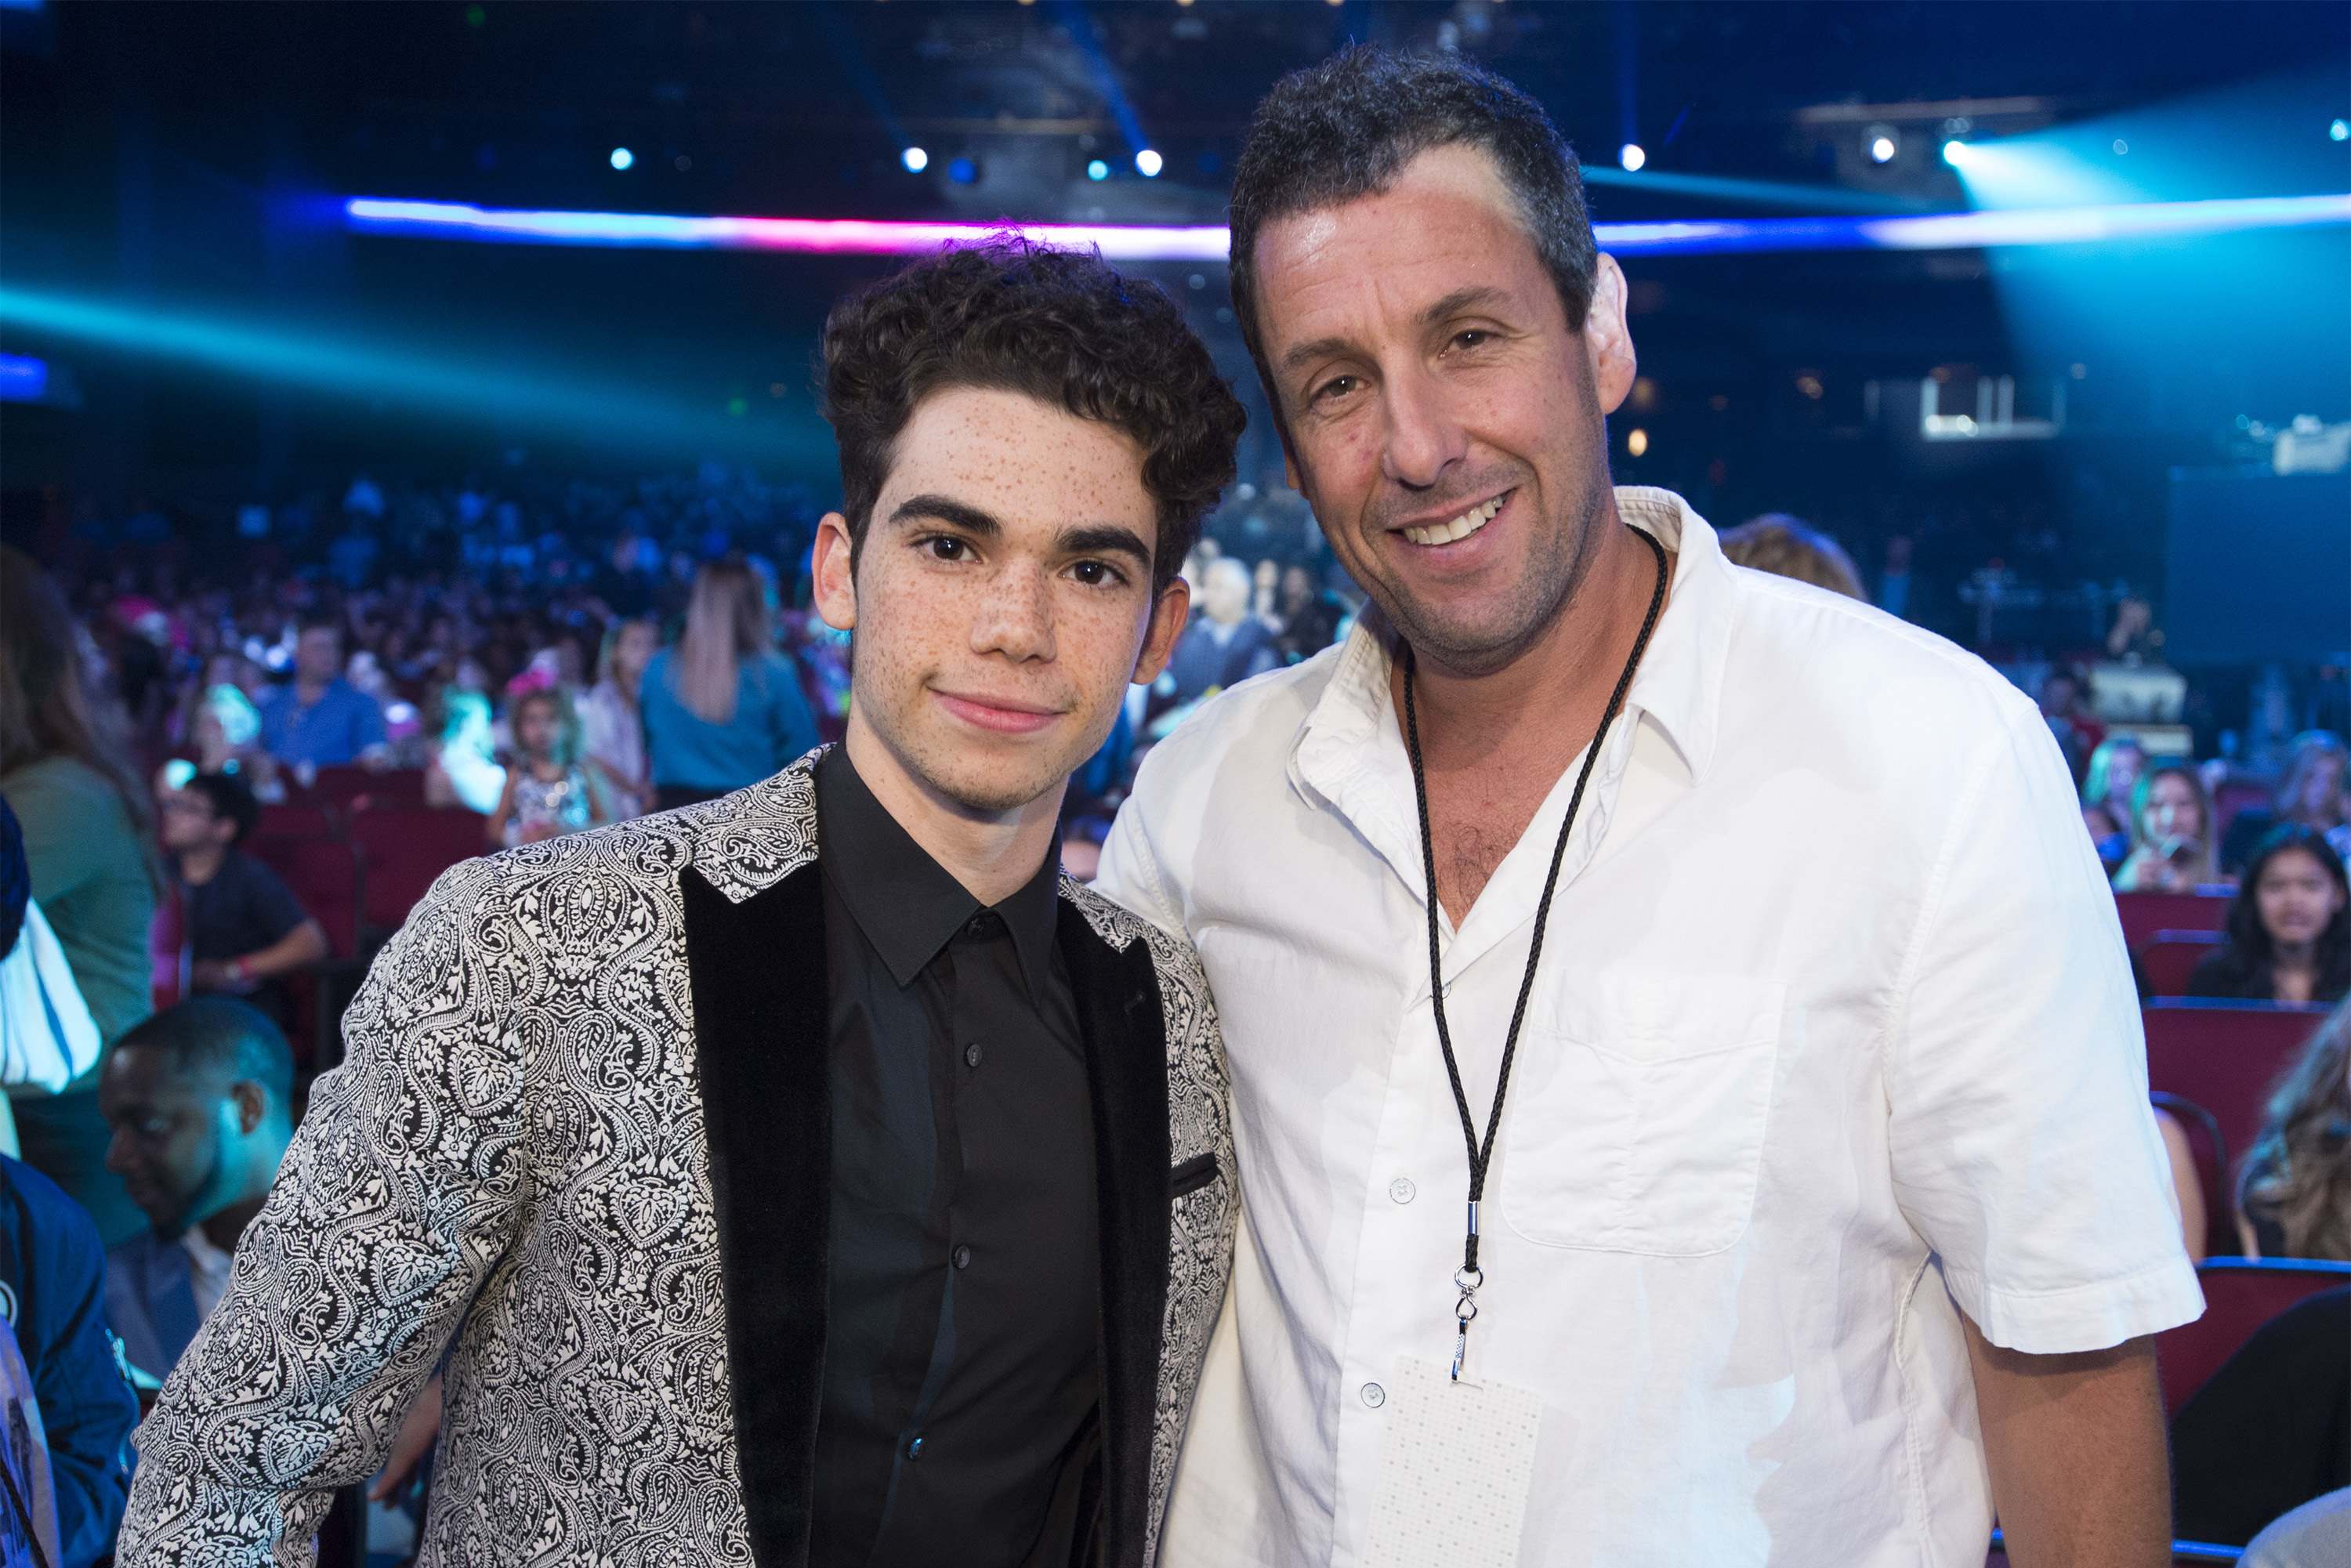 (From left) Cameron Boyce and Adam Sandler attend the Radio Disney Music Awards at Microsoft Theater in Los Angeles, Calif., on April 29, 2017.